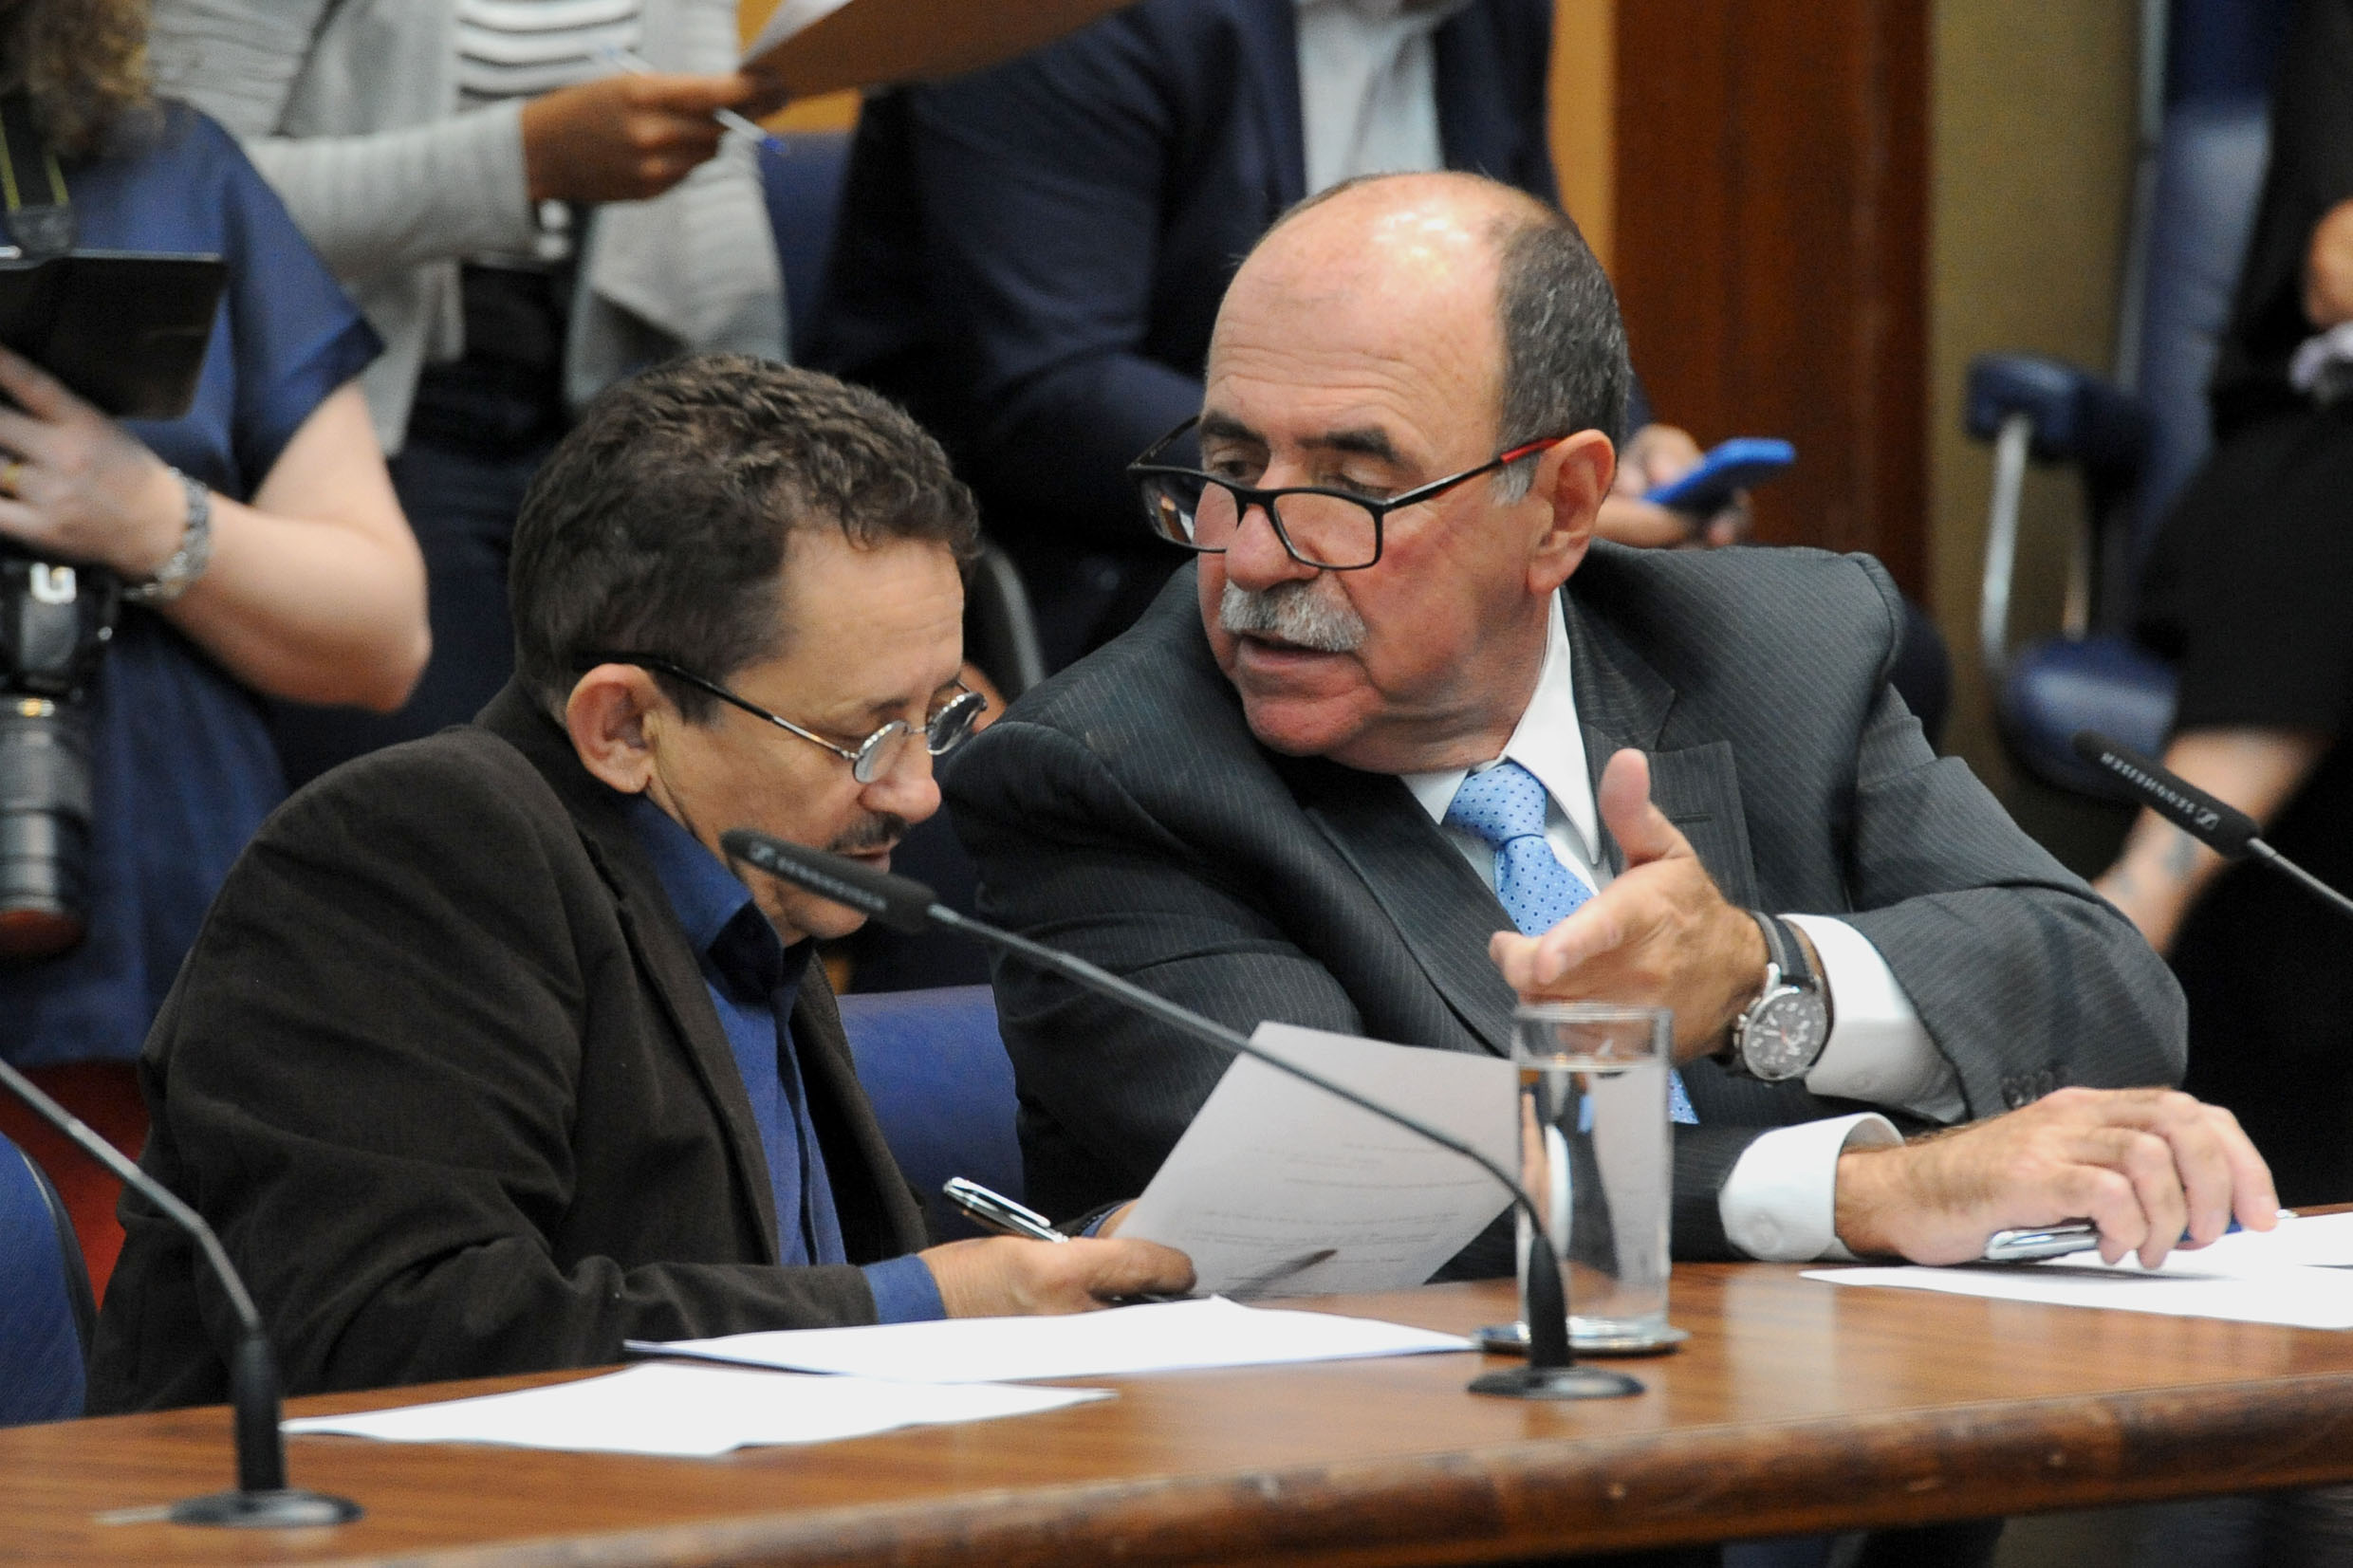 Parlamentares na comissão<a style='float:right' href='https://www3.al.sp.gov.br/repositorio/noticia/N-11-2018/fg228049.jpg' target=_blank><img src='/_img/material-file-download-white.png' width='14px' alt='Clique para baixar a imagem'></a>